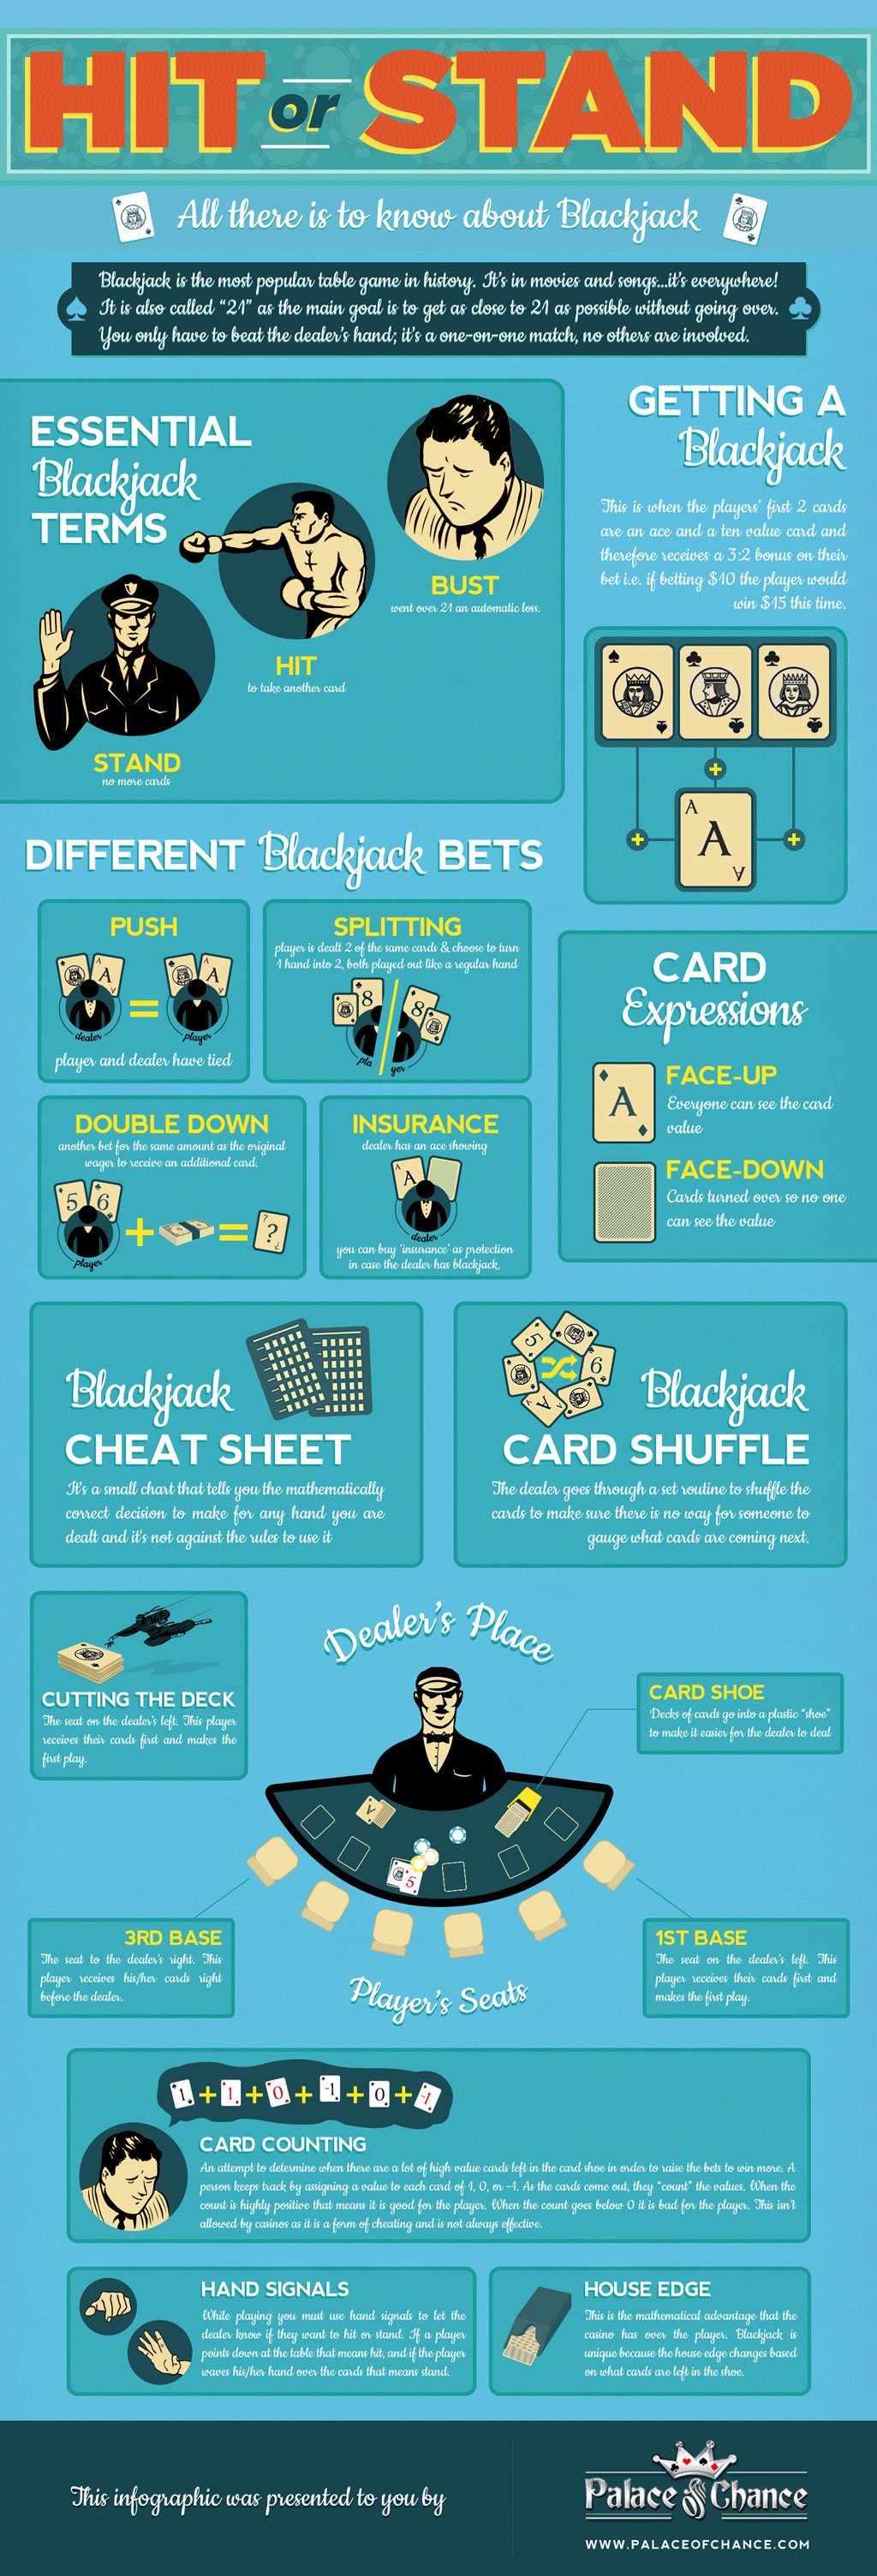 Blackjack 101-Infographic